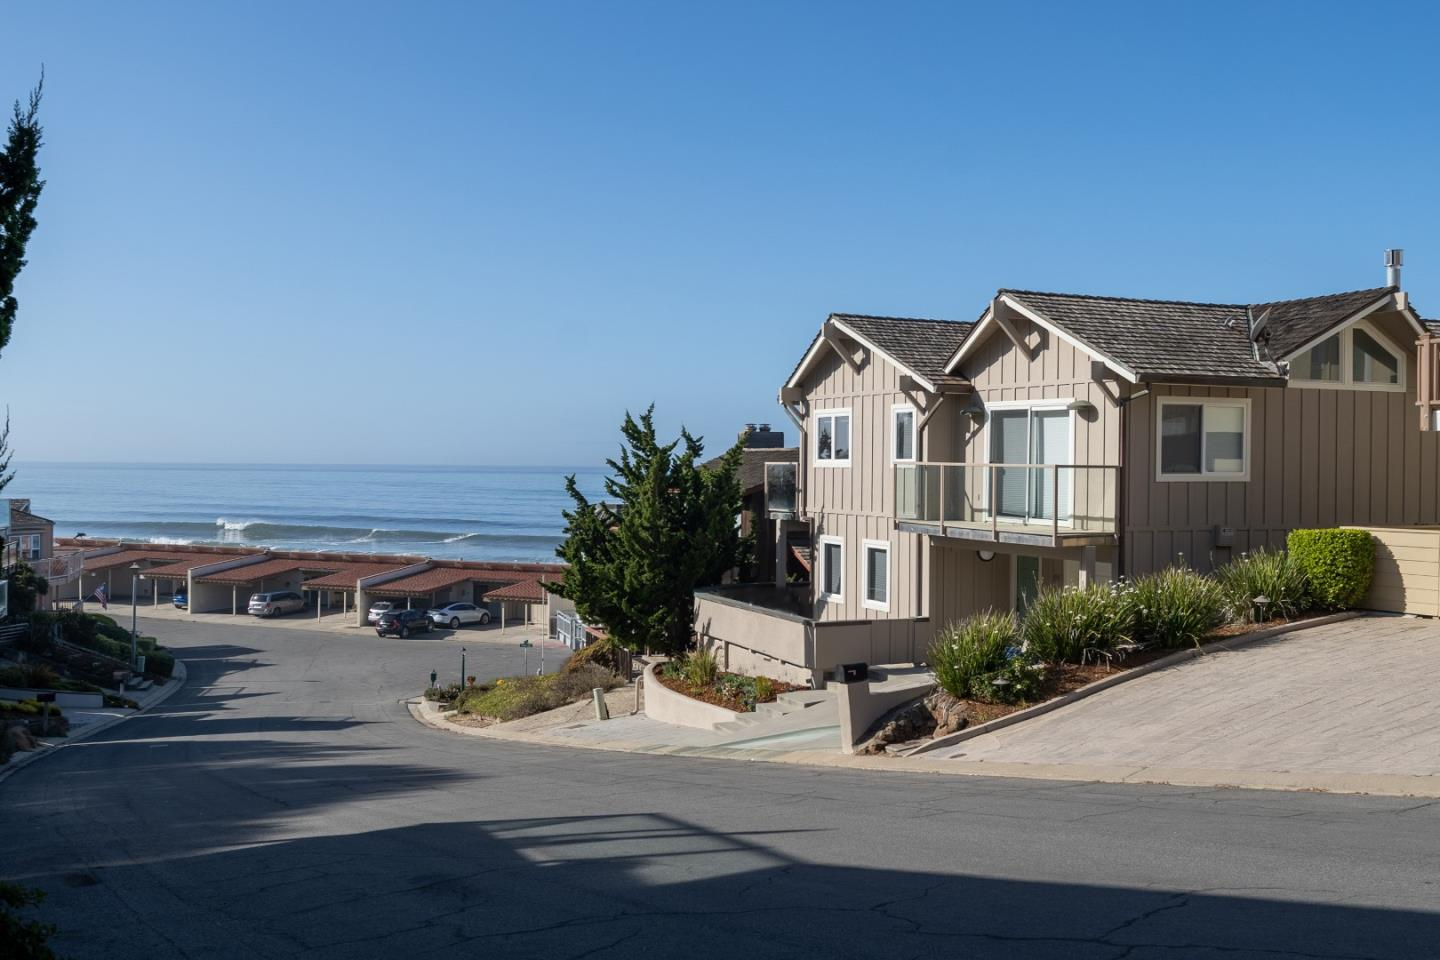 Located in the gated area of Sand Dollar Beach, this beautiful 3 bedroom, 2.5 bathroom, 2037 sq. ft. ocean view property was featured in Sunset magazine for its beautiful home lighting concepts. Upstairs, the modernized kitchen and dining area have two adjacent decks overlooking the Monterey Bay National Marine Sanctuary. Located off the dining room is a beautiful living area with a gas burning fireplace and another ocean view patio. The upstairs master bedroom with an ocean facing balcony has a bathroom with powder room, dual sinks, and separate bathroom areas. With five ocean view decks you will feel like you are always on vacation. Downstairs, the reverse floor plan with two bedrooms, a second living area, one full bathroom with a sauna, and a wrap around deck, creates a feeling of privacy between the upper and lower levels of the home. Manresa and Sunset State Beaches nearby. Highway 1 gives easy access to Monterey and Santa Cruz. Come check out this newly updated ocean dream!